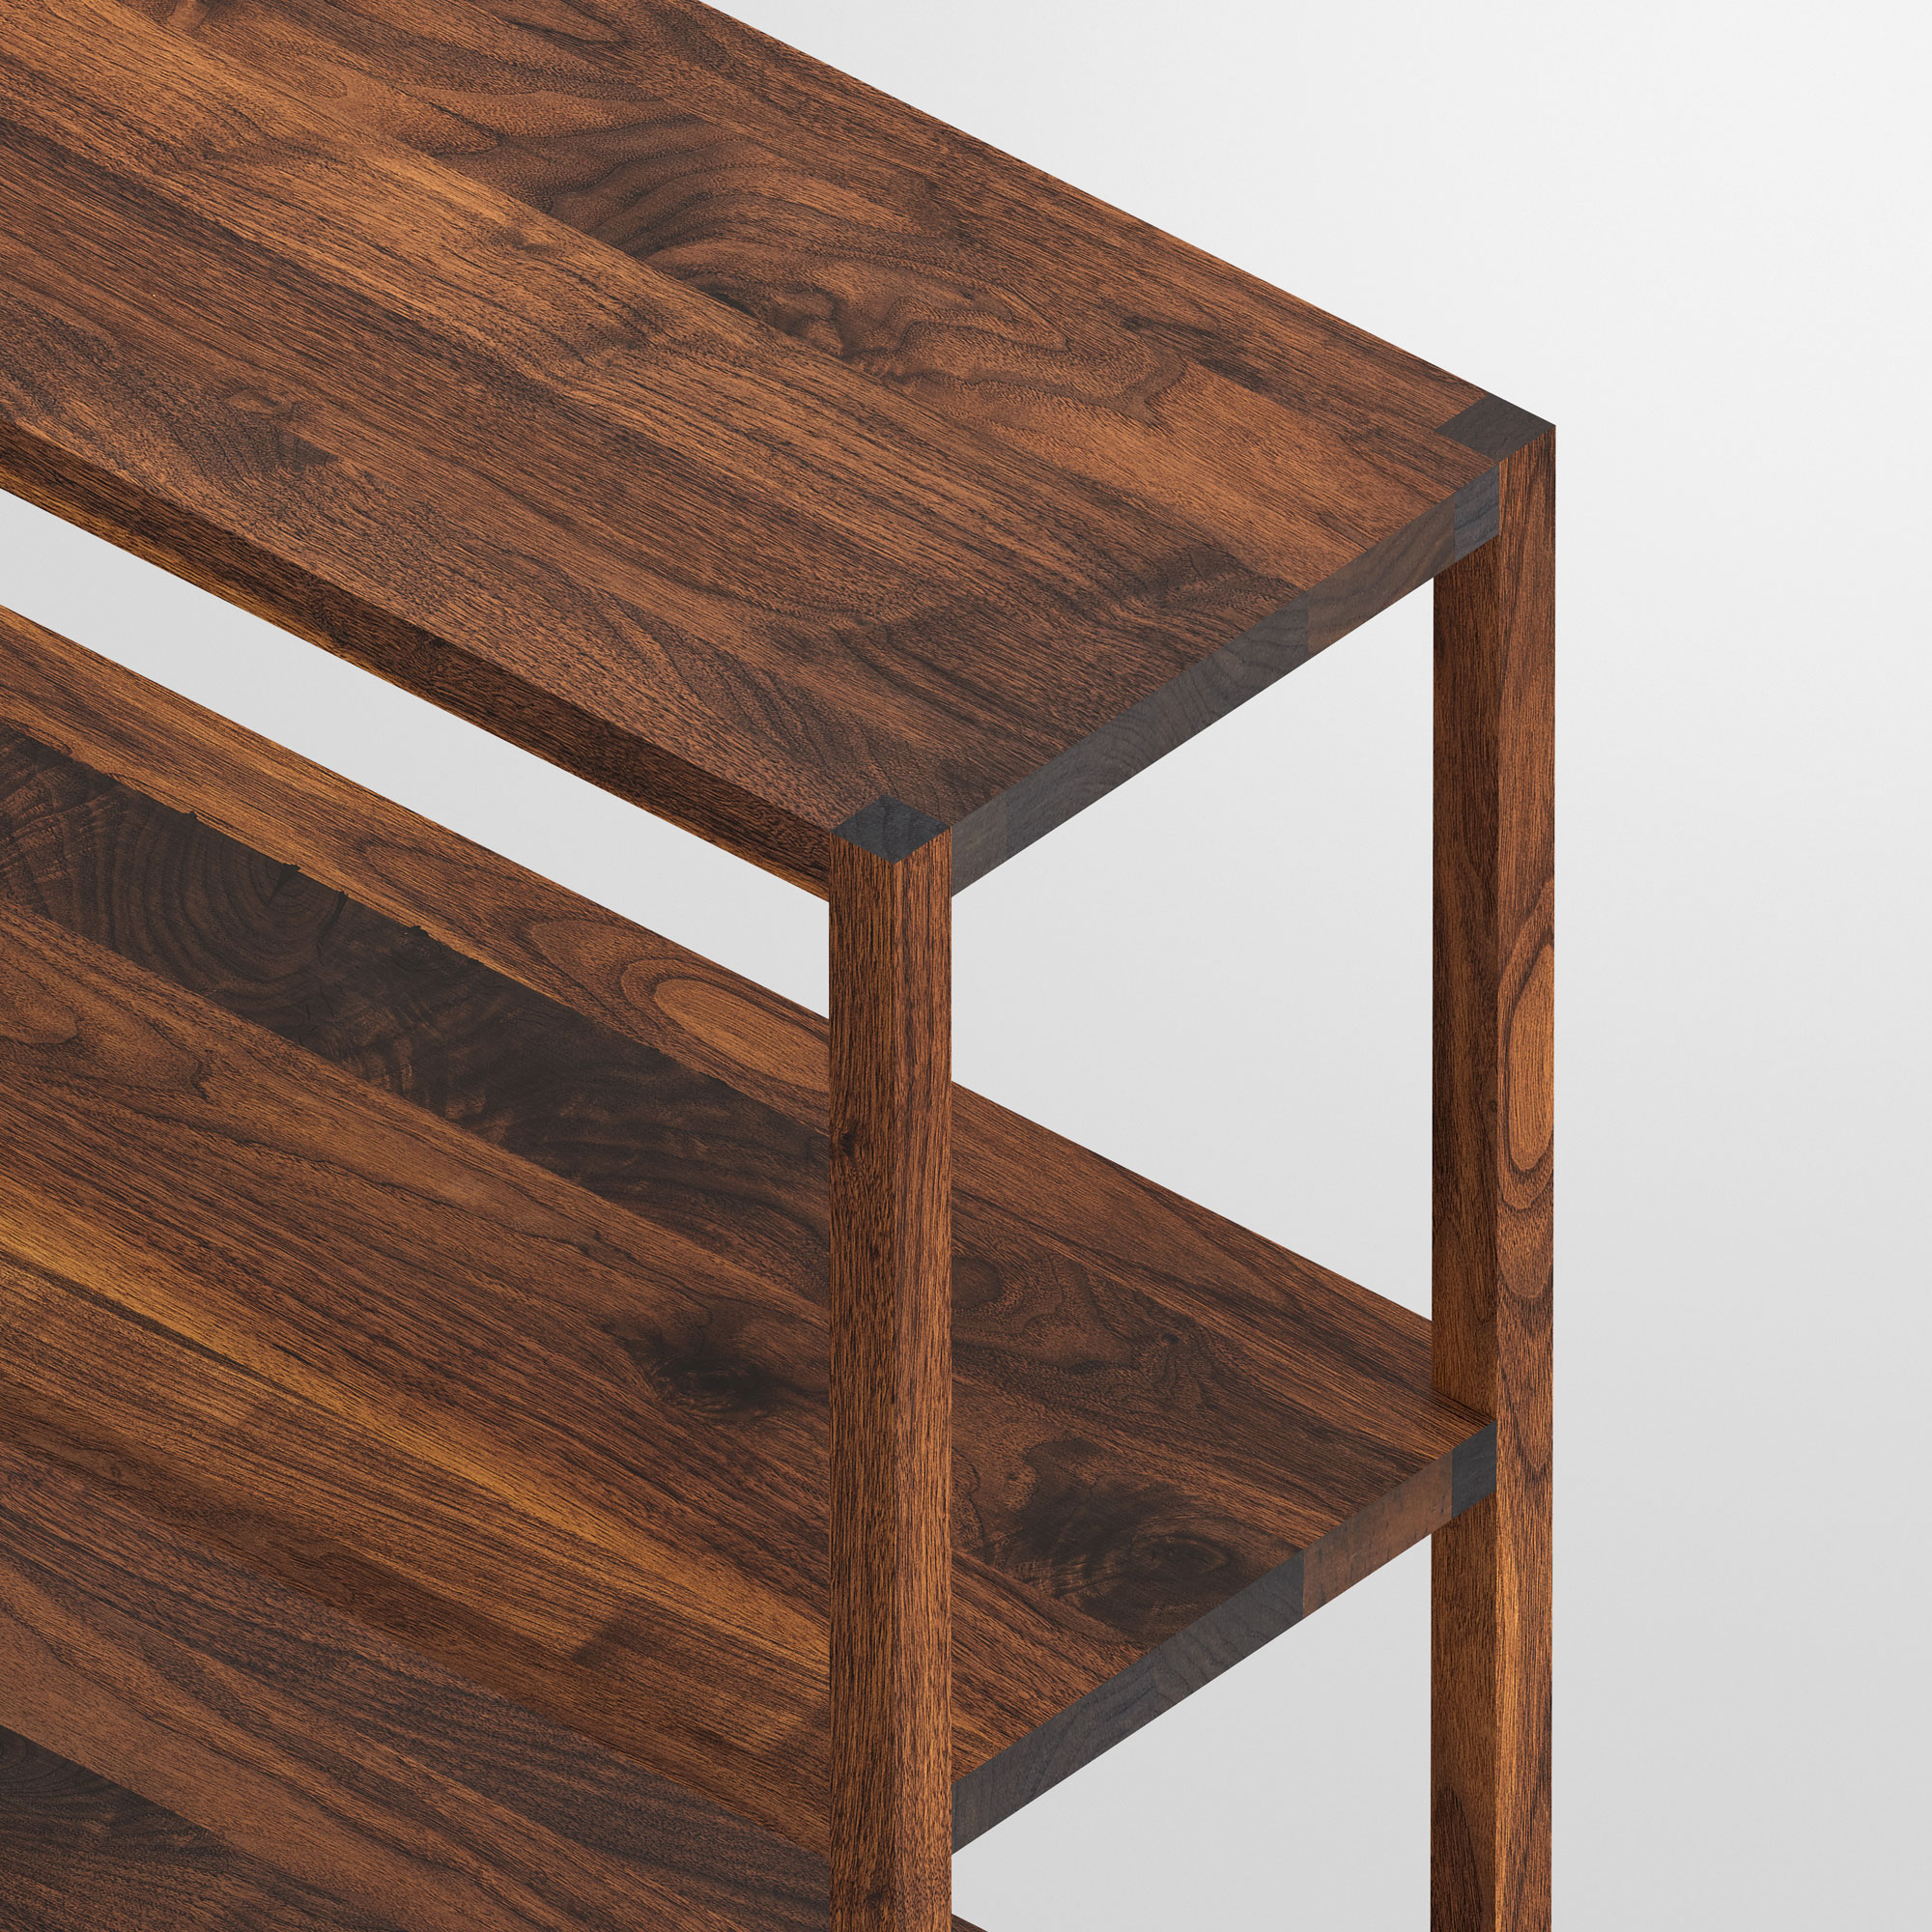 Linoleum Wood Shelf SENA cam4 custom made in solid wood by vitamin design